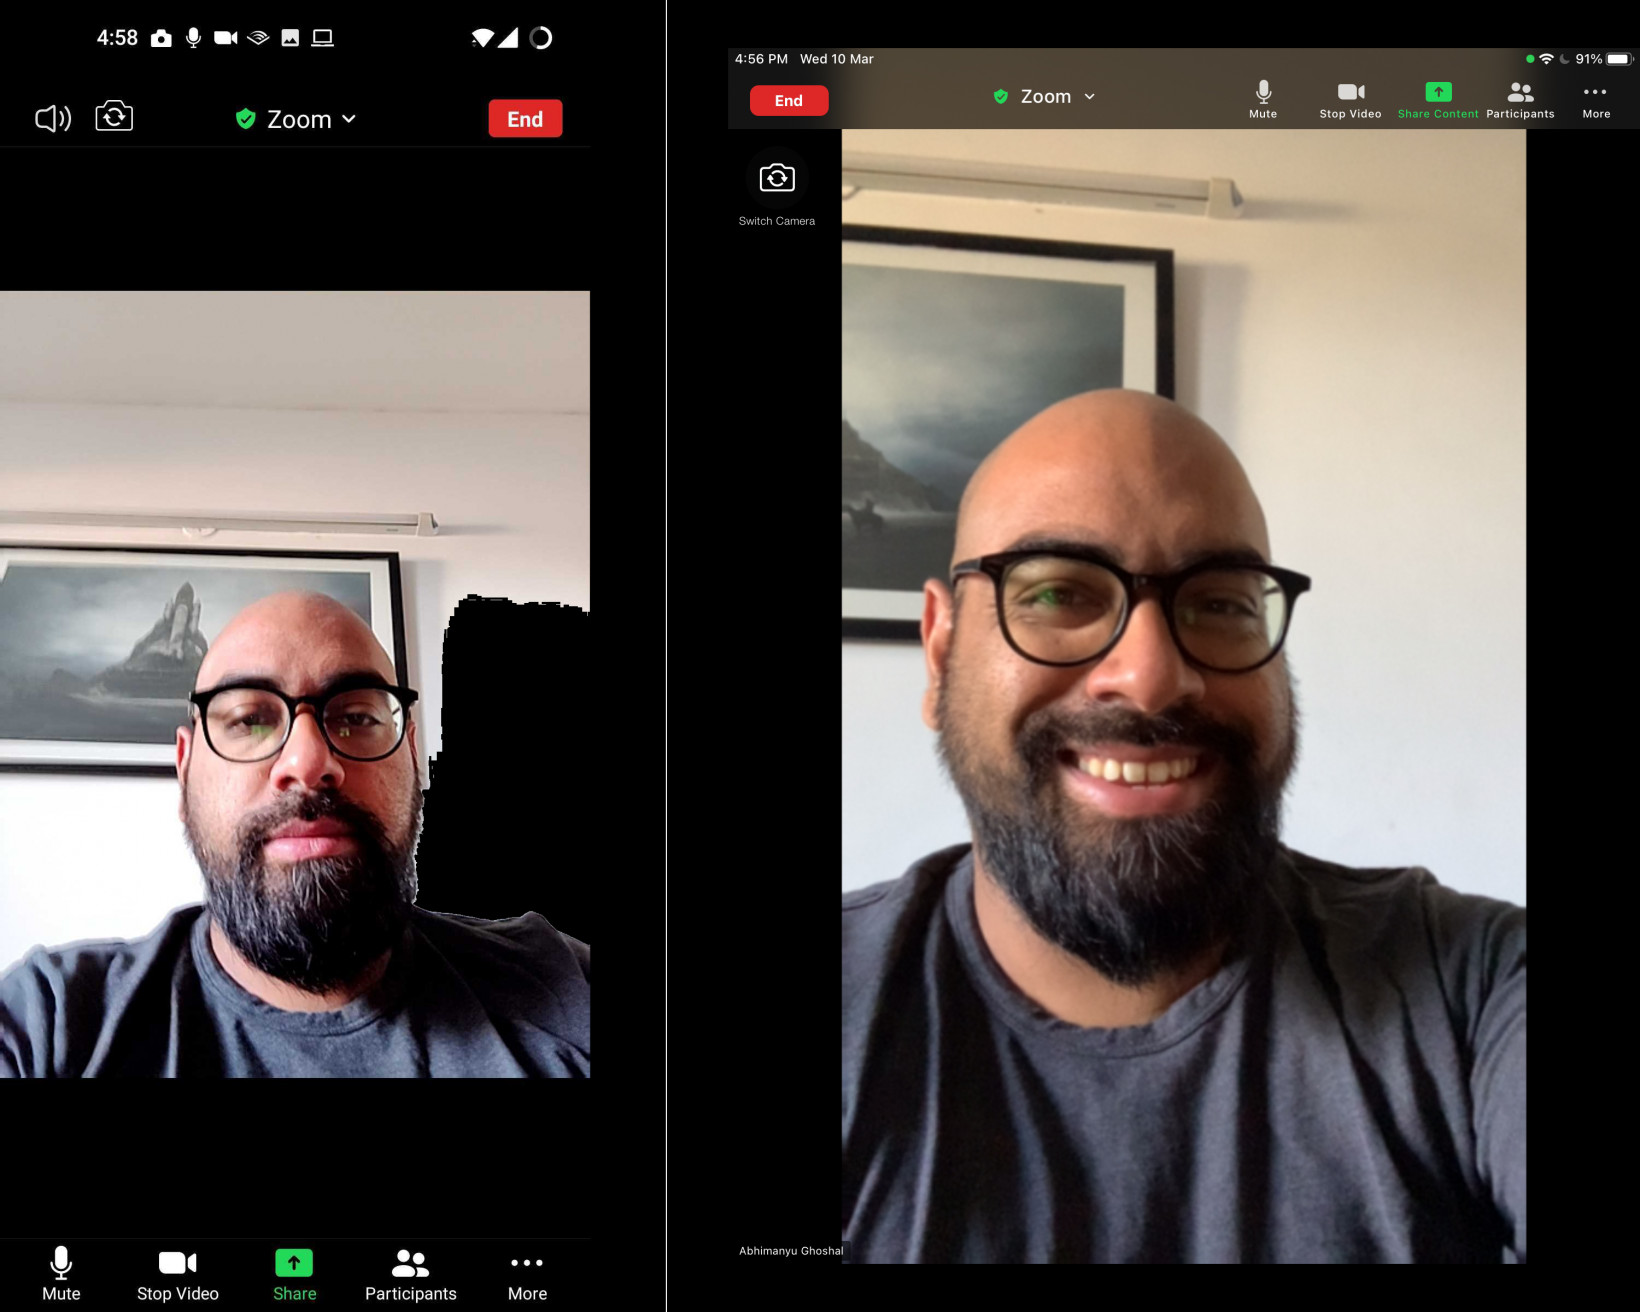 How I usually hold my phone in hand for video calls (left) vs How I can take calls on my iPad at a better angle (right)